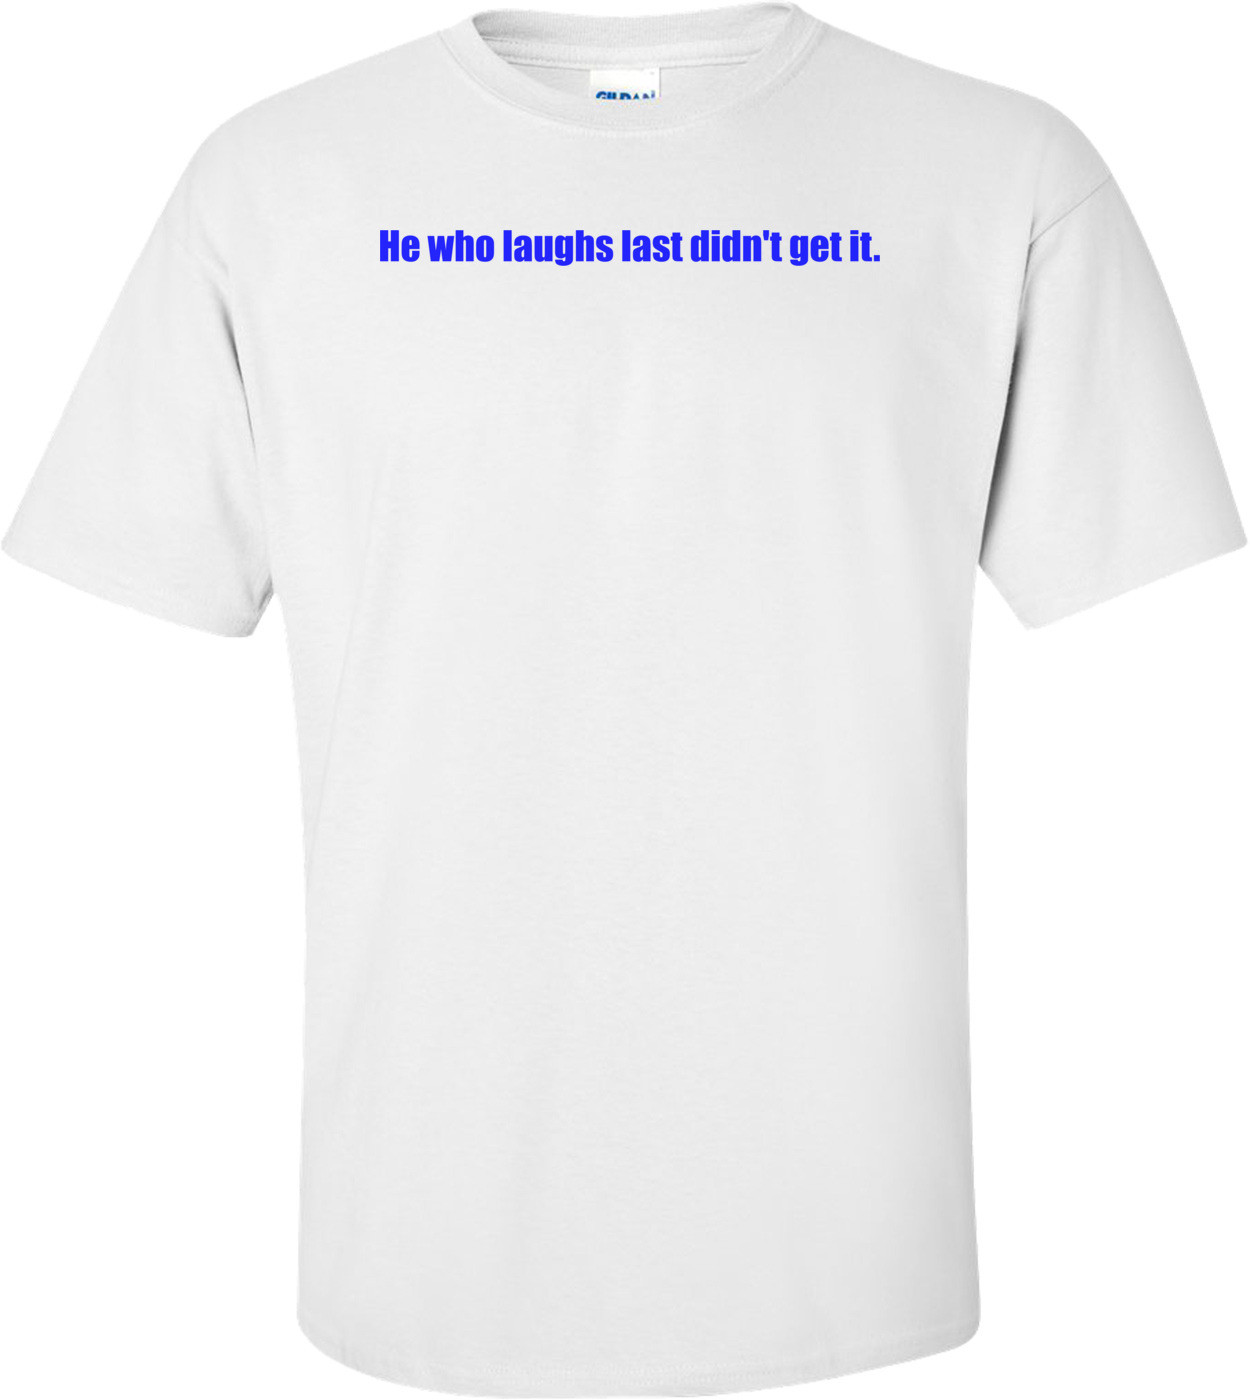 He who laughs last didn't get it. Shirt